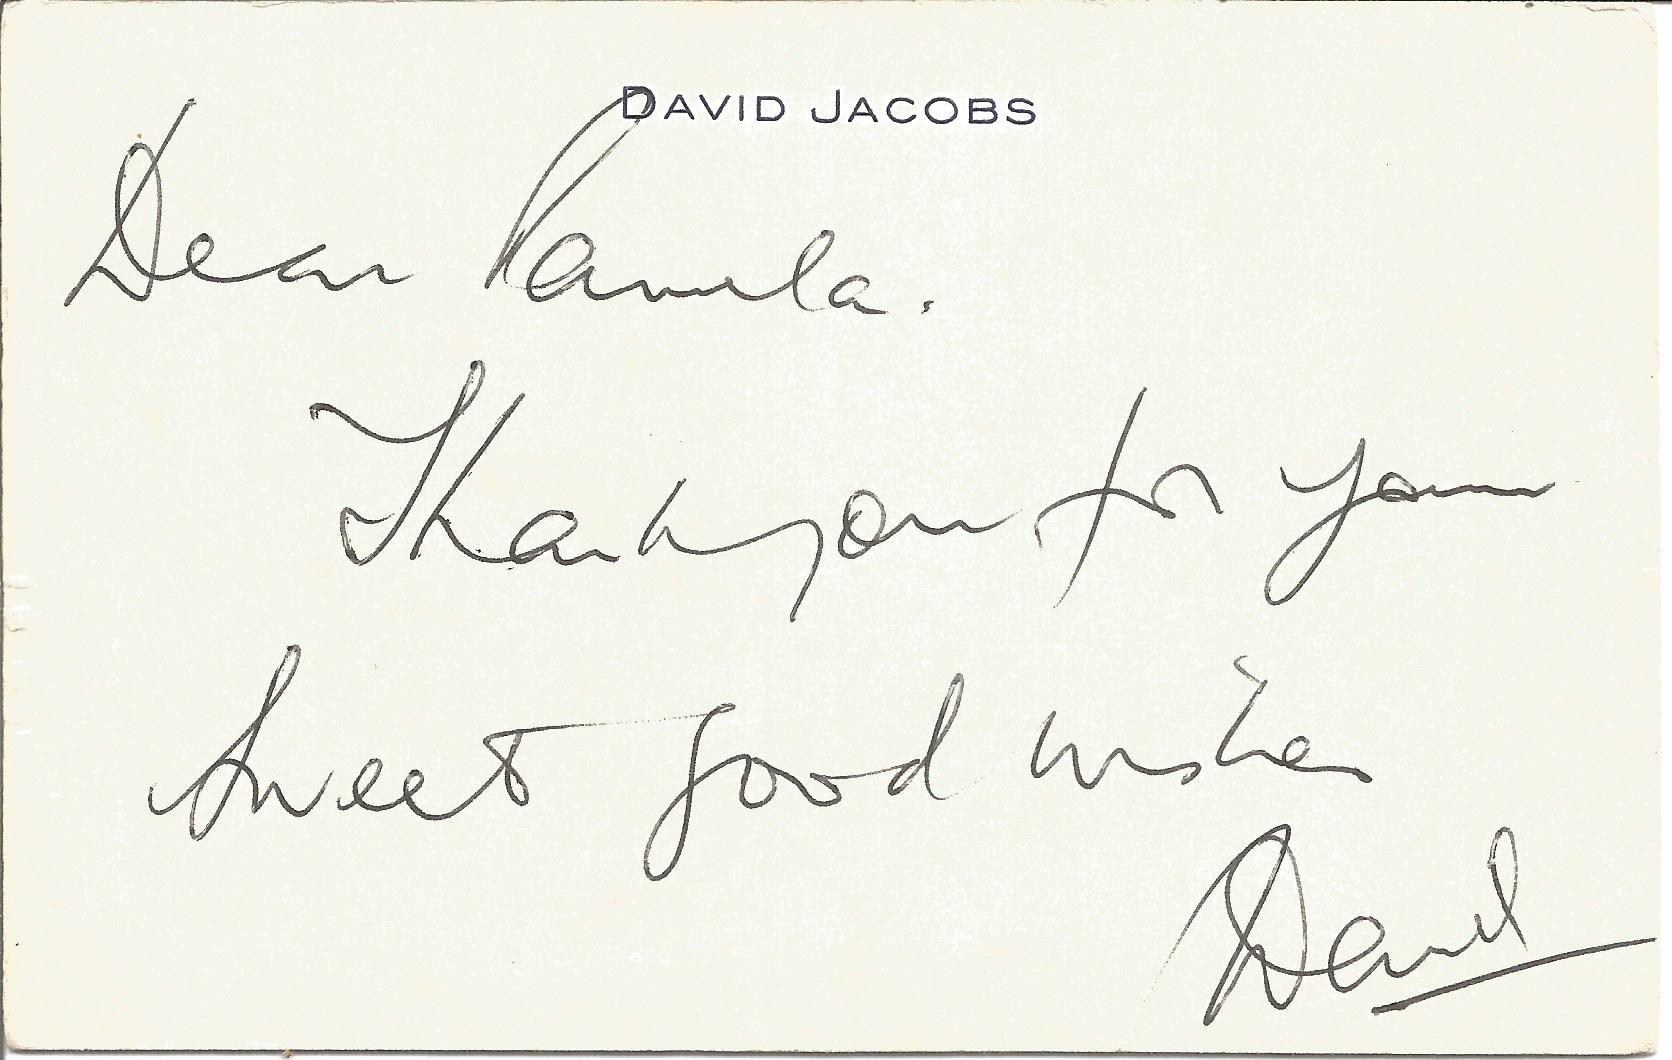 David Jacobs ALS white headed card. Jacobs was a British broadcaster perhaps best known as presenter